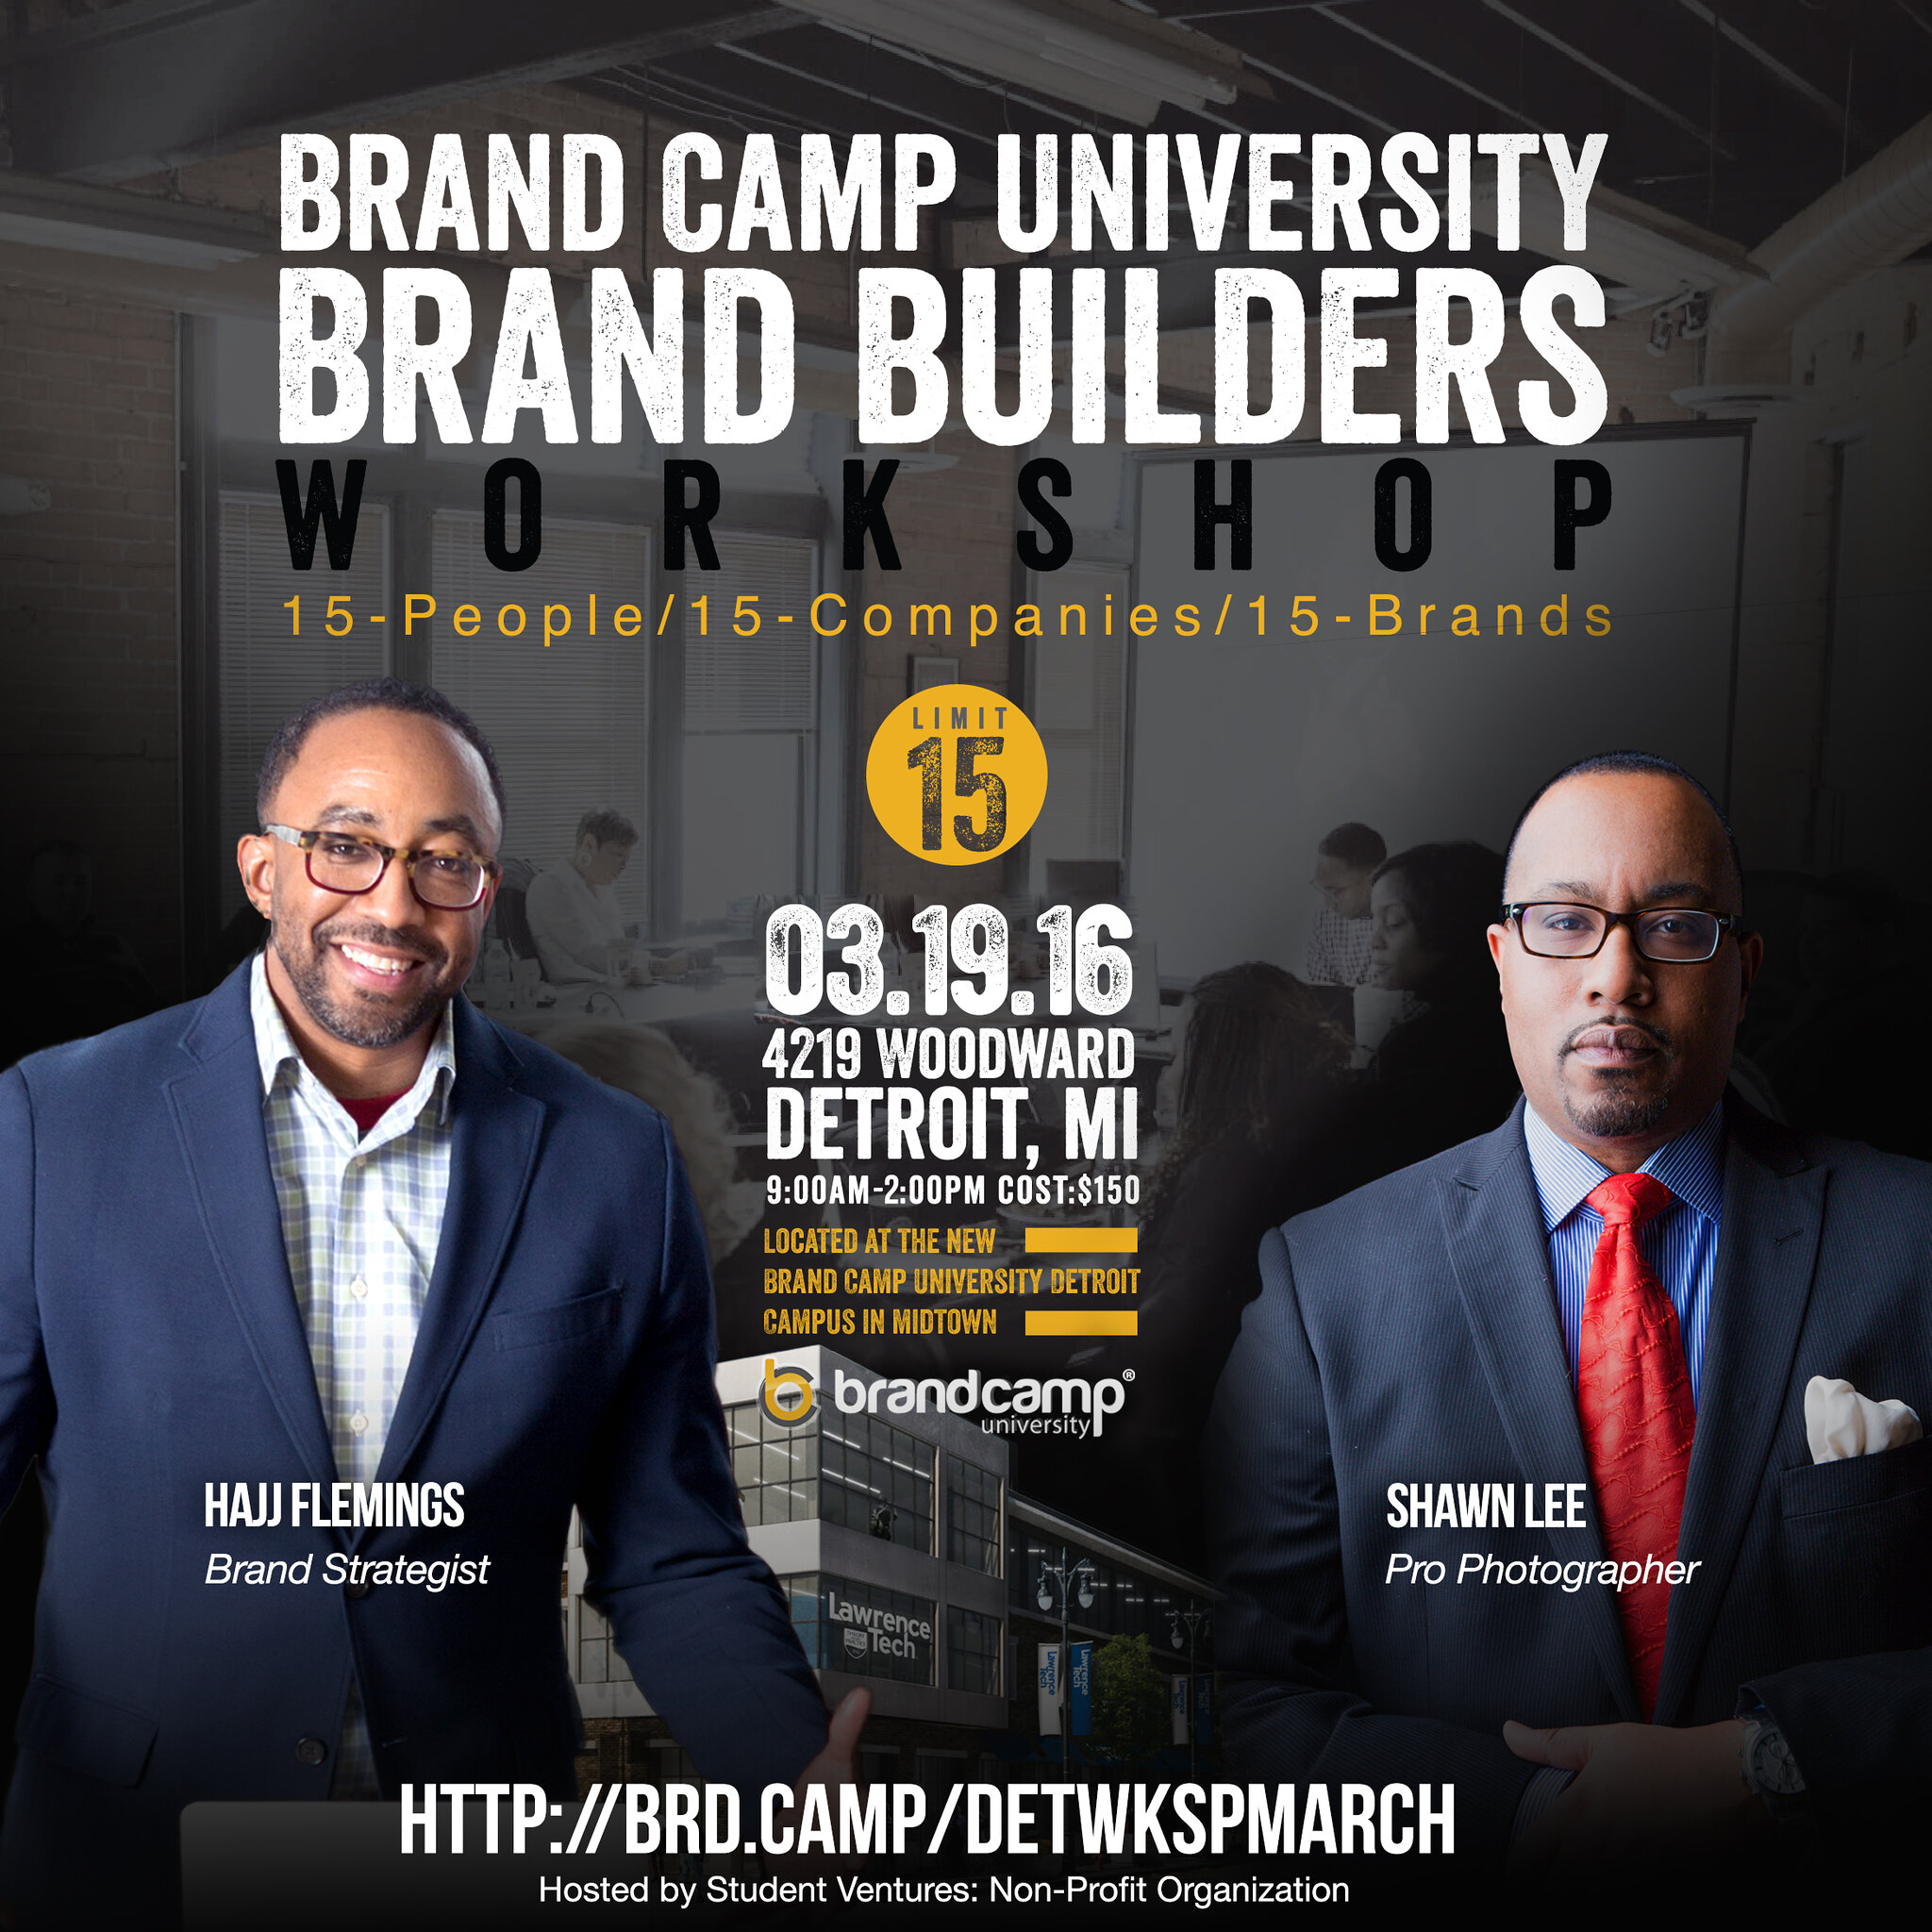 BRAND BUILDERS 2016 HAJJ AND SHAWN march